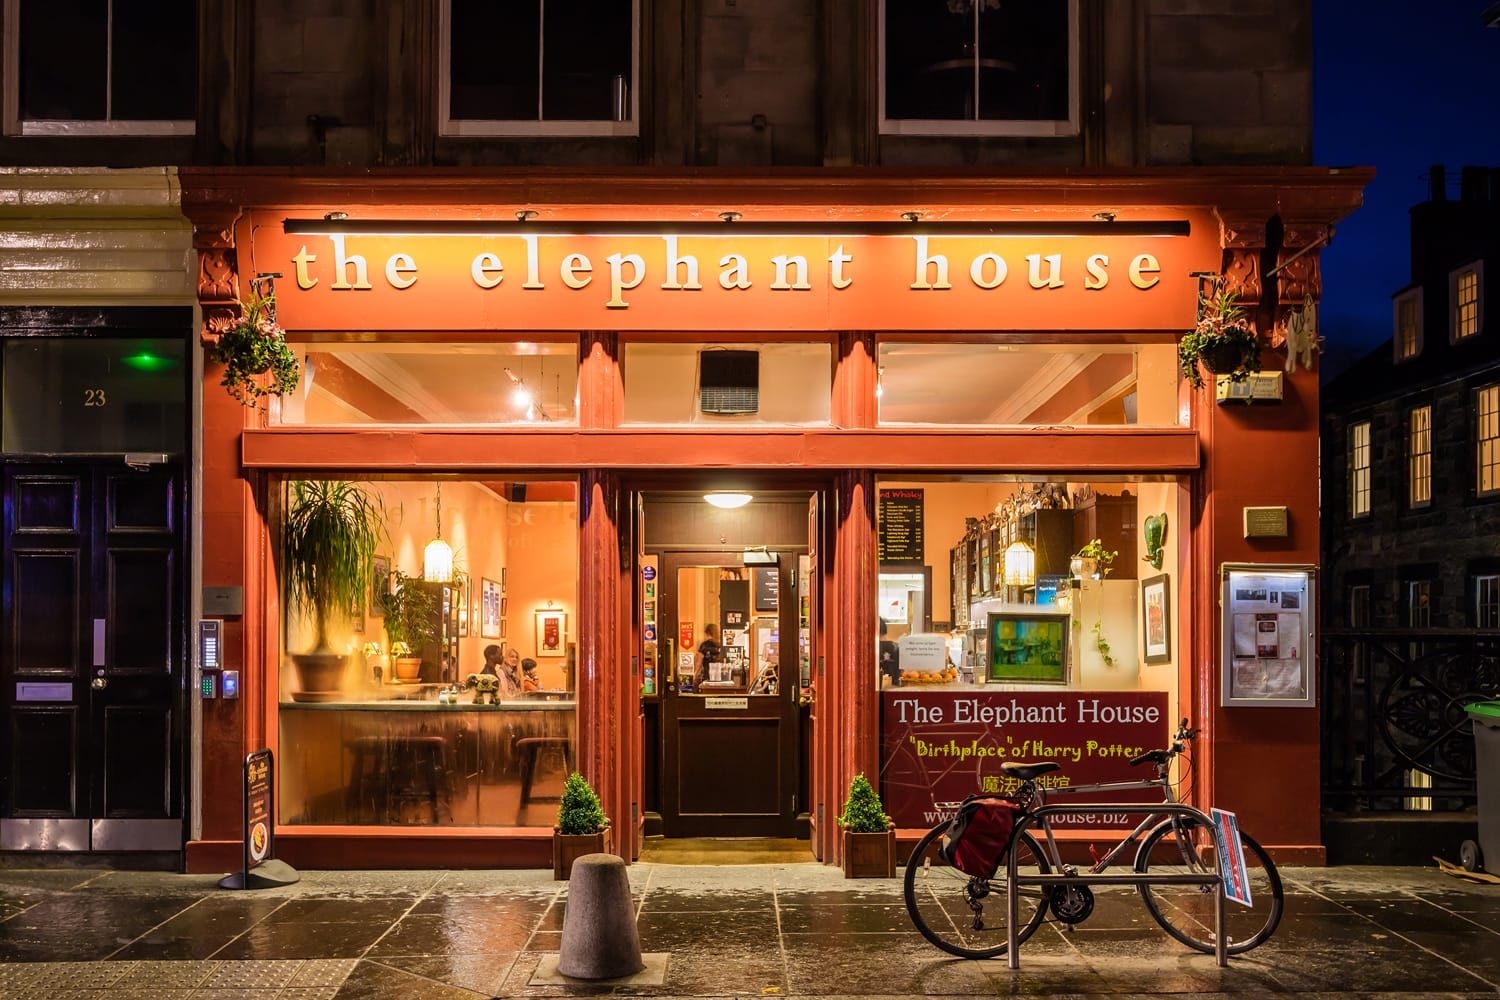 The Elephant house cafe, made famous as the place of inspiration to writer J.K. Rowling, author of Harry Potter.